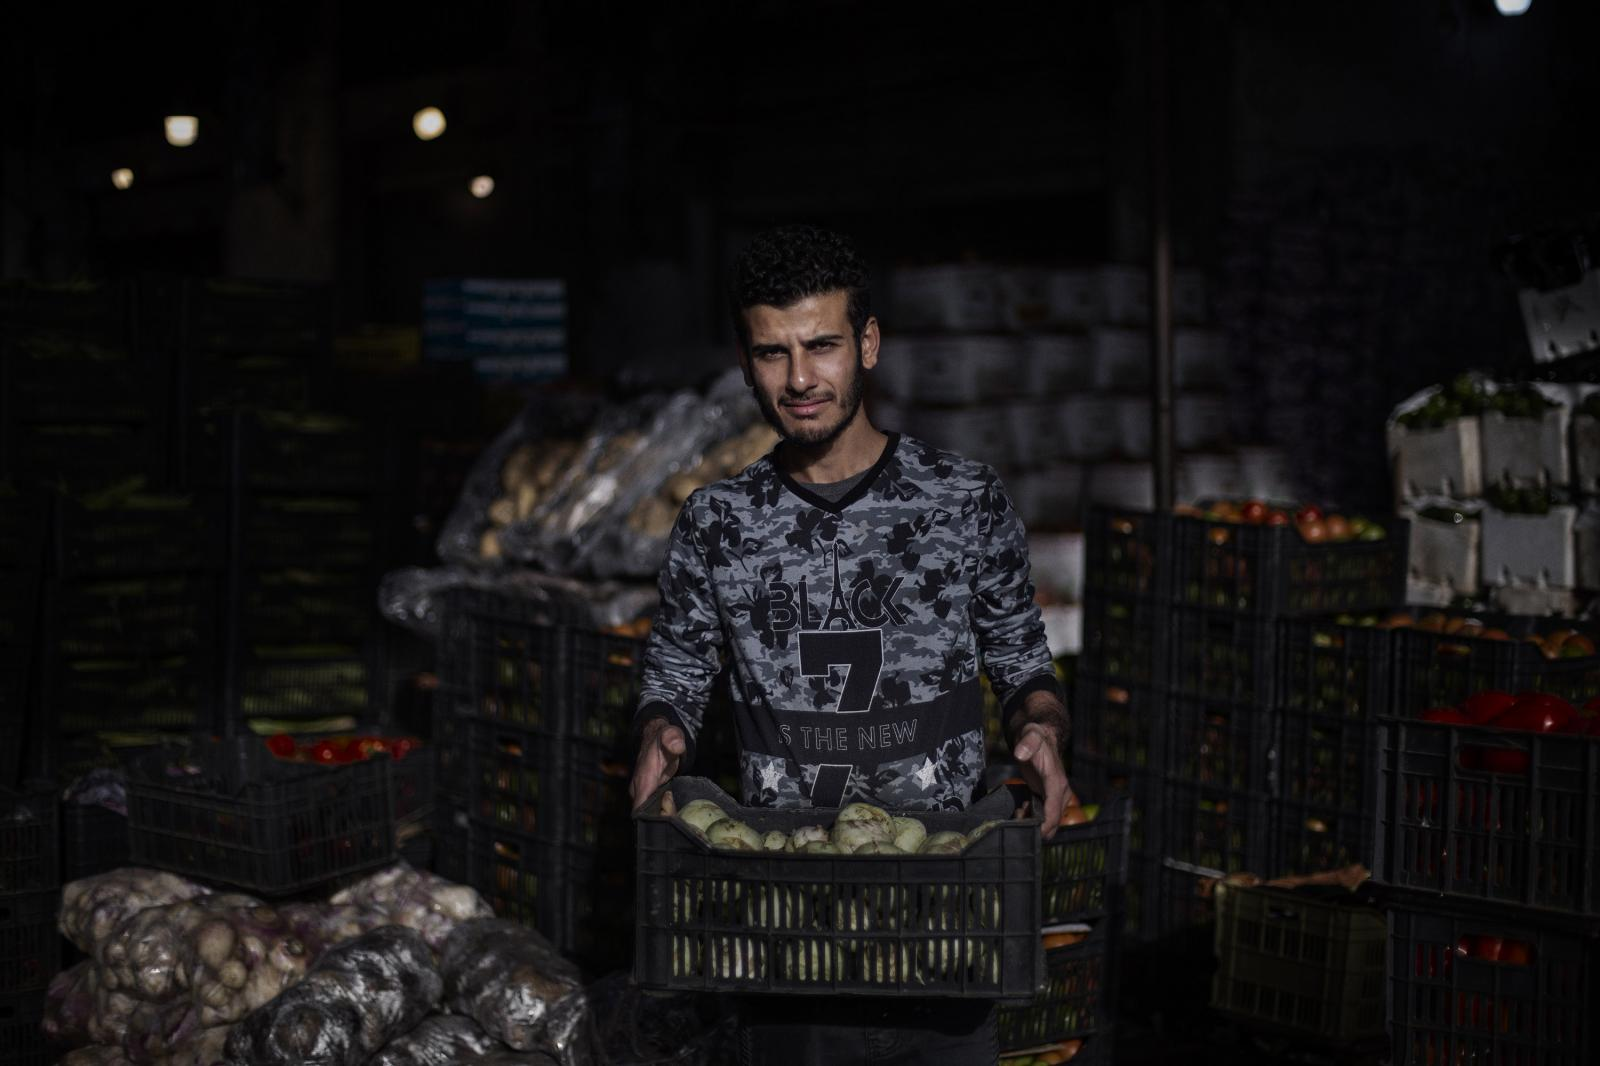 Ali Deeb, 26, vegetable worker. I'm against the revolution. It makes me tired and the road closures get in the way of my work. Bab al-Tabbaneh, Tripoli. Lebanon. December 11th, 2019. Diego Ibarra Sánchez for CNN